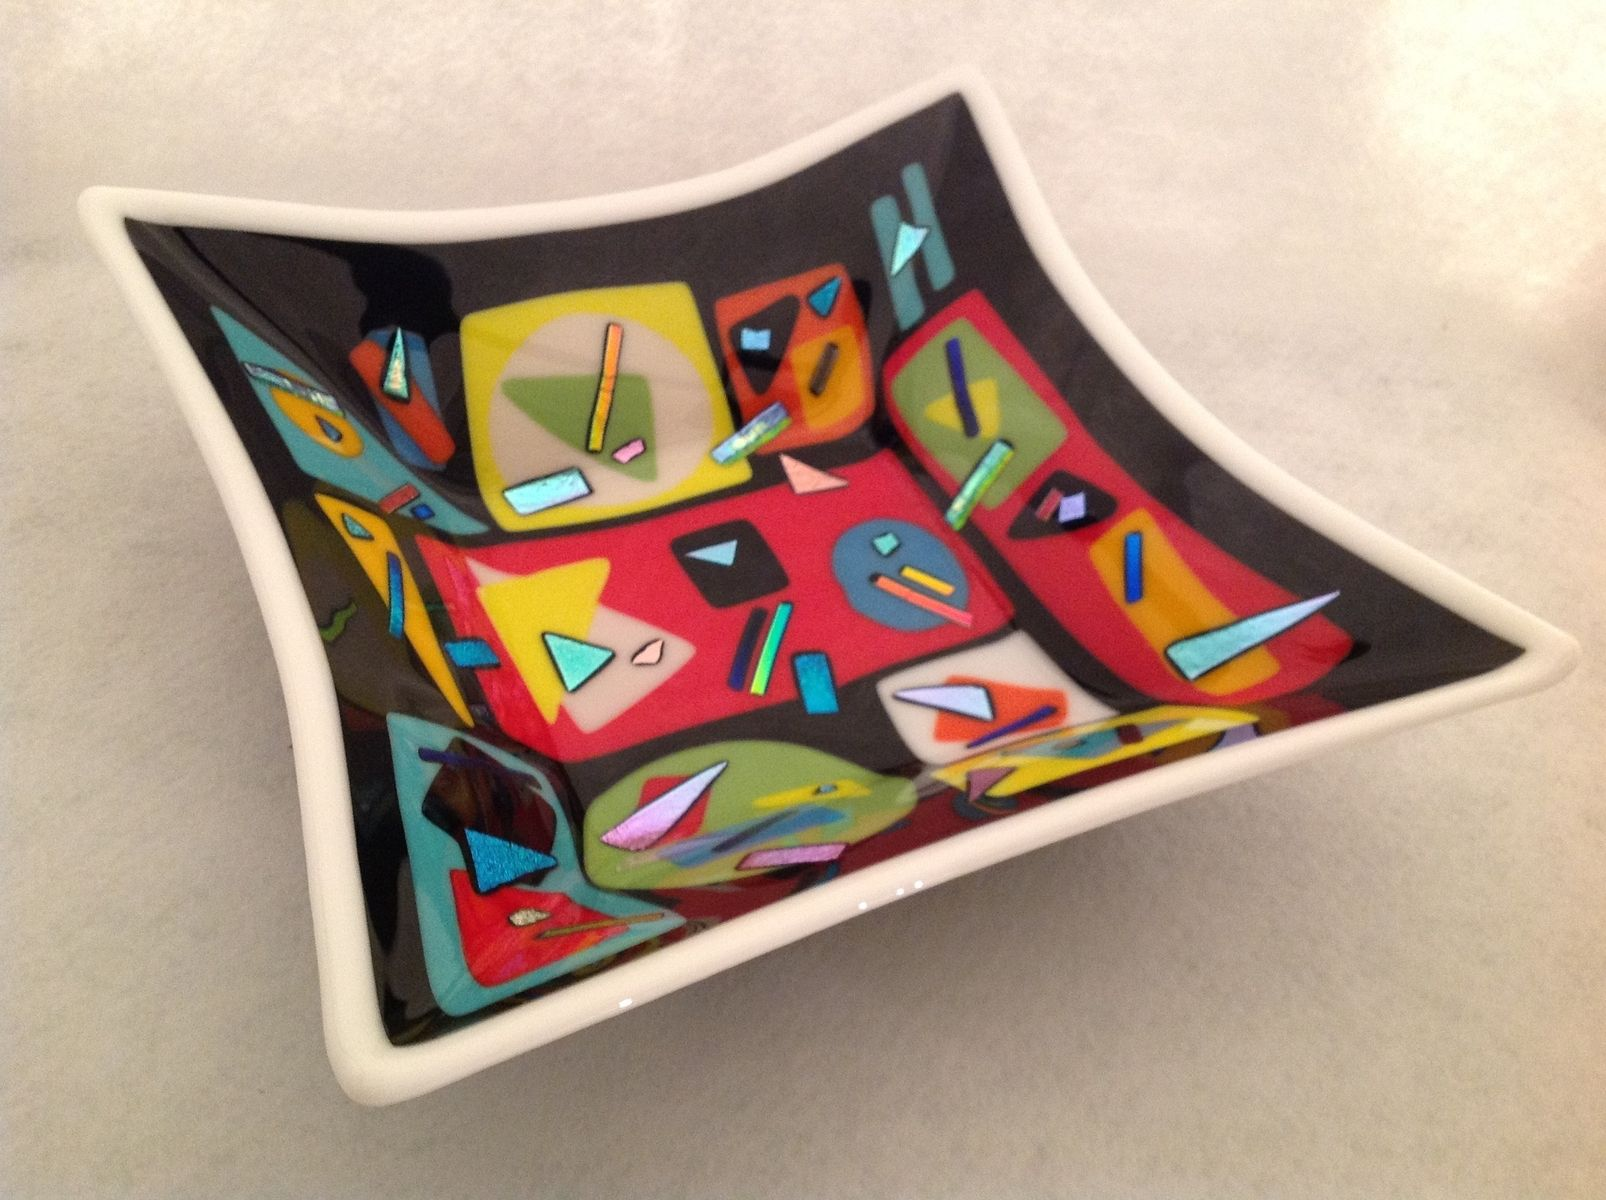 Hand Crafted Large Fused Glass Square Bowl With Geometric